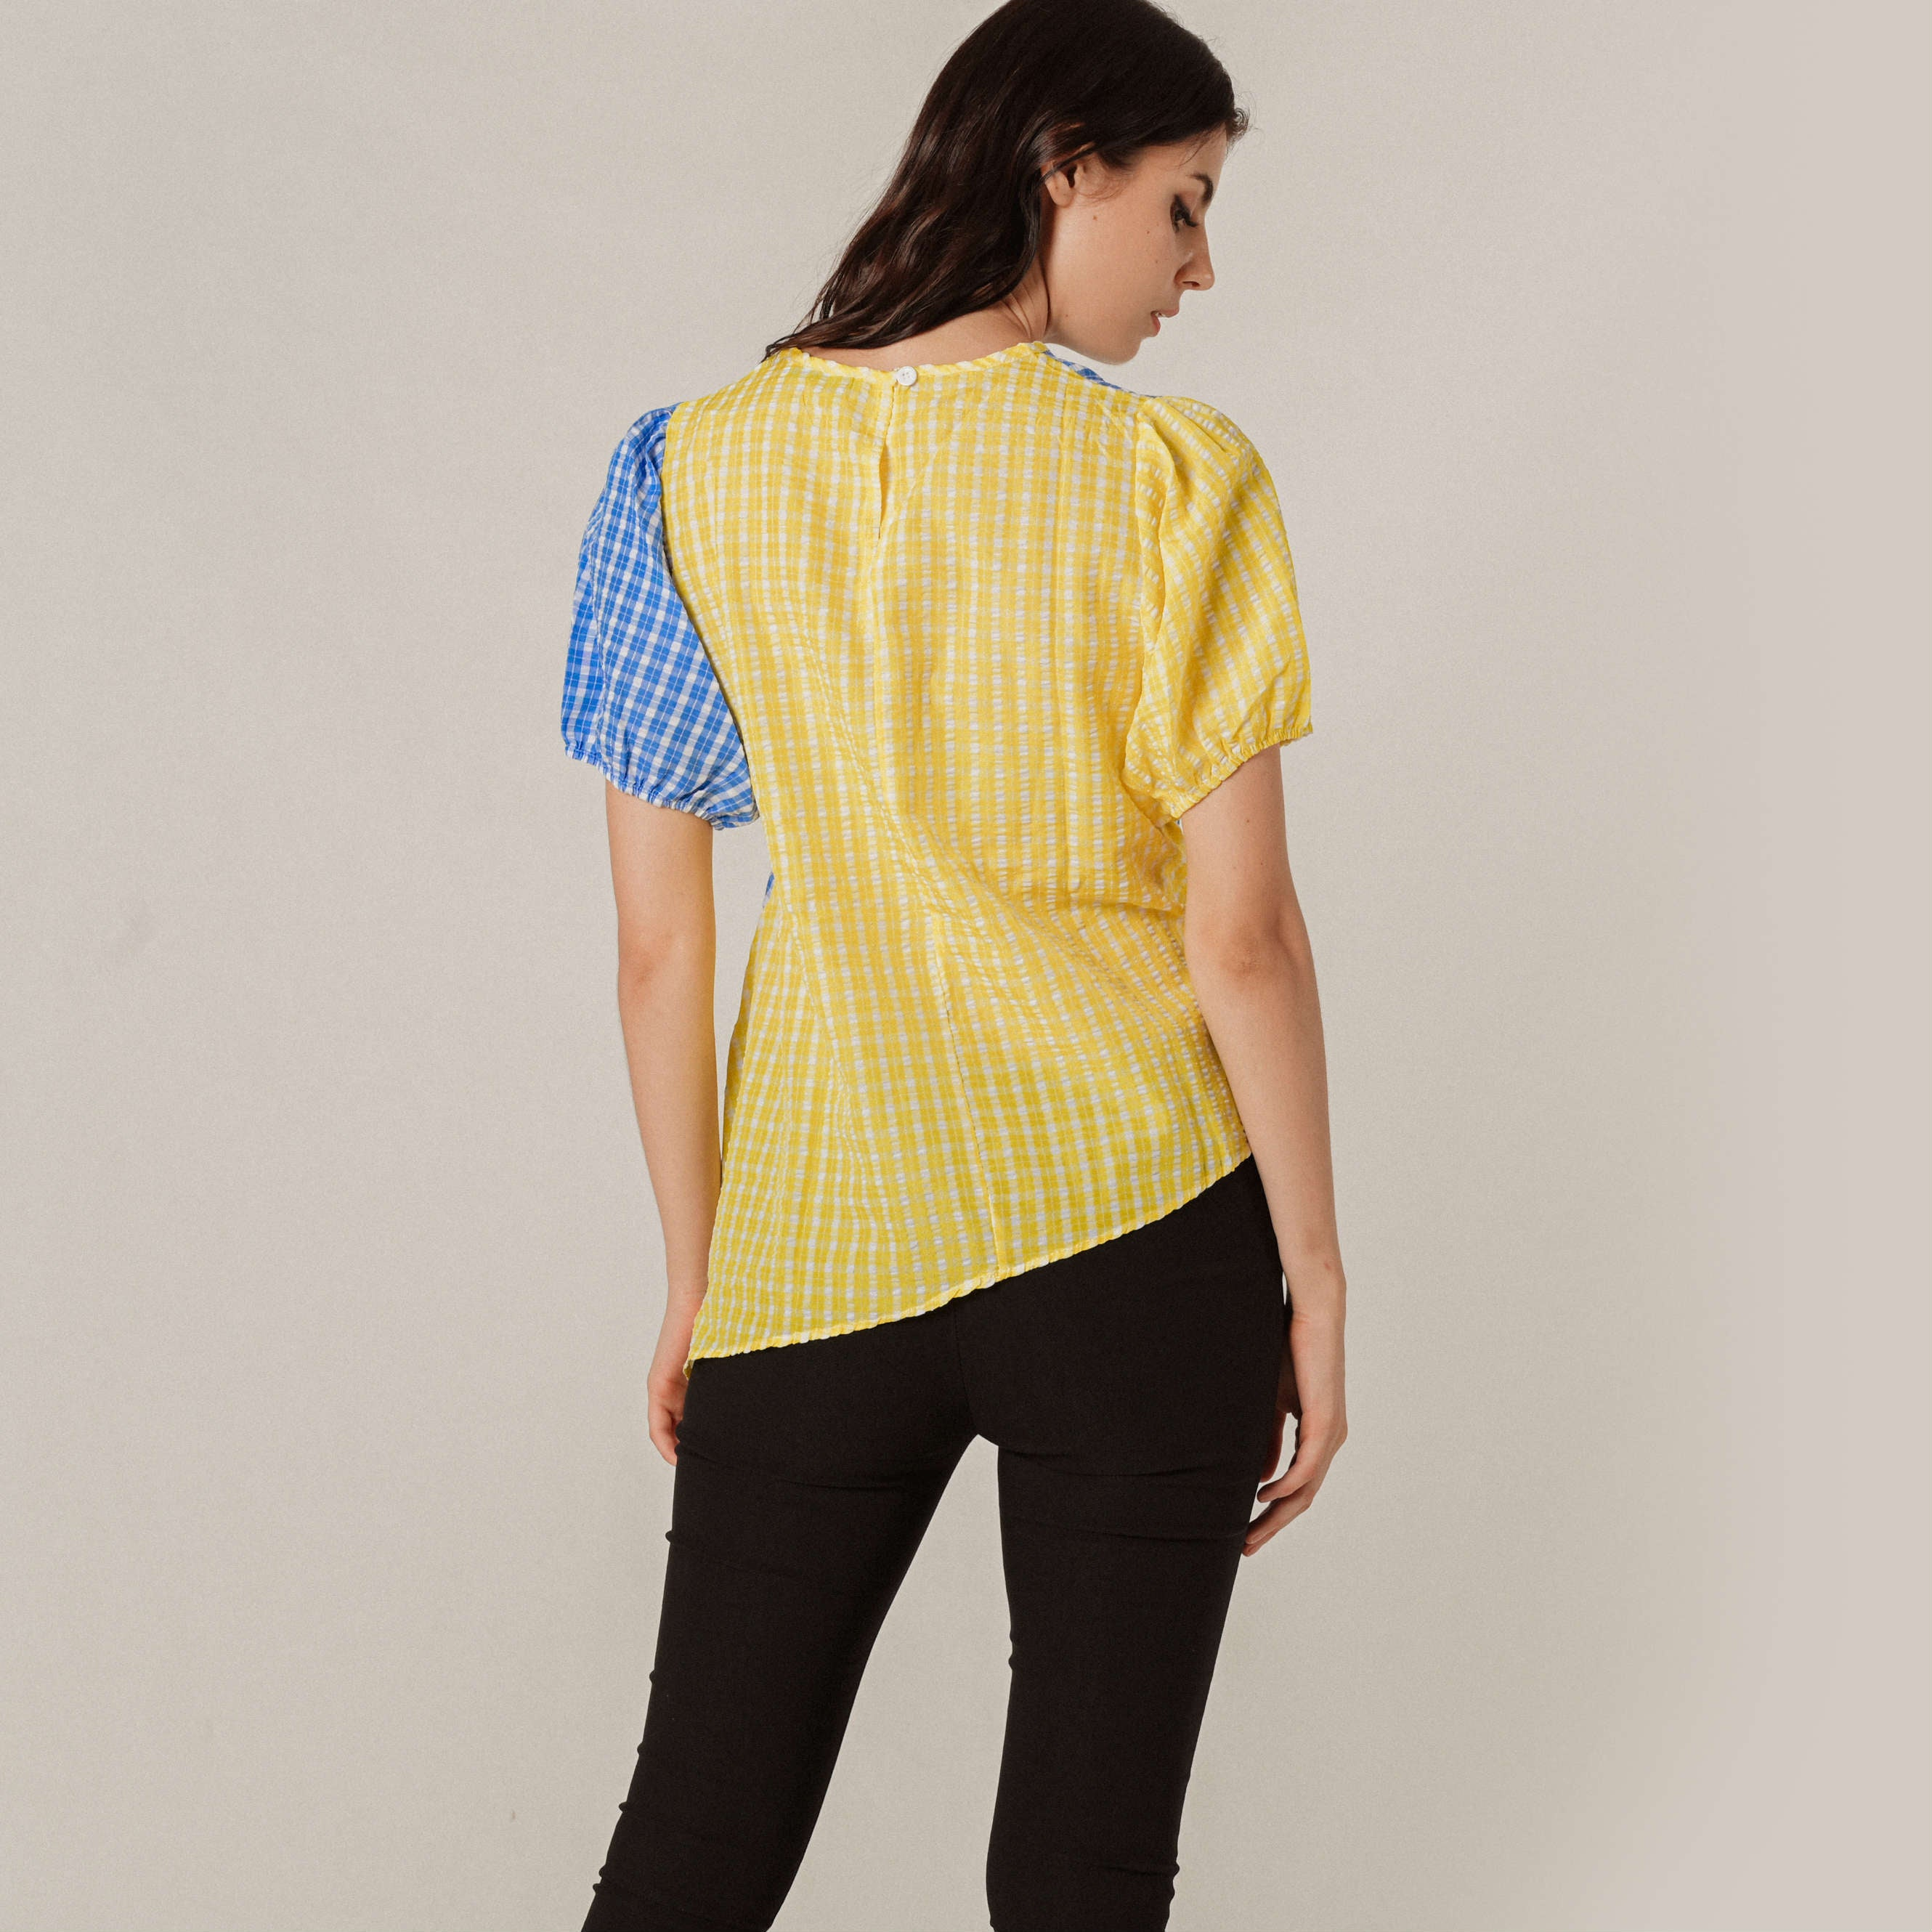 Mavery Checked Top - Yellow & Blue